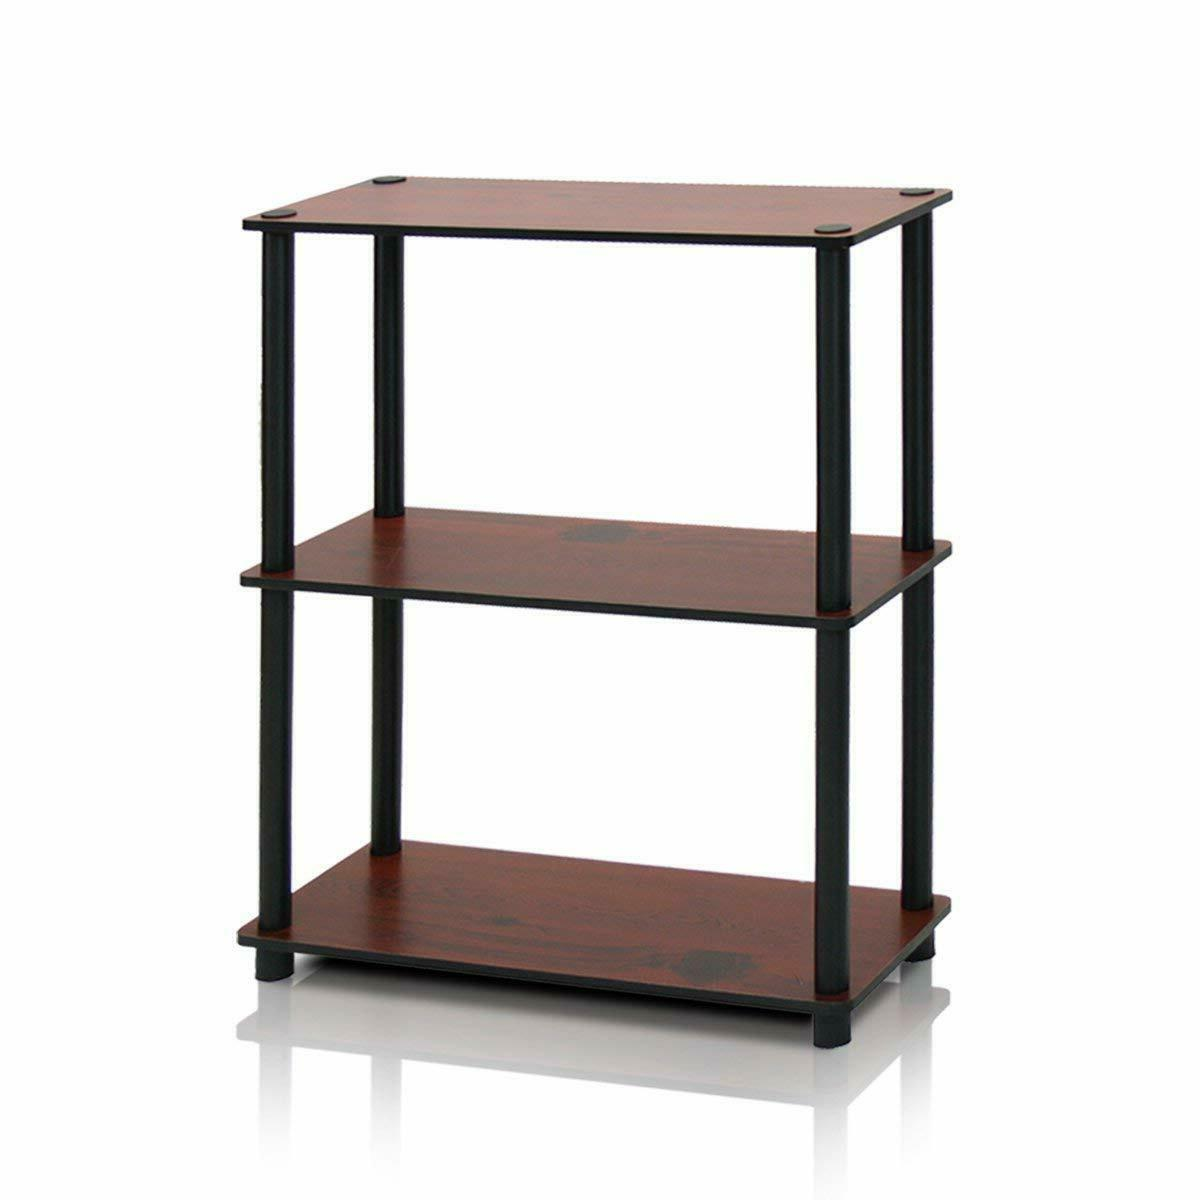 Furinno Compact Multipurpose Rack